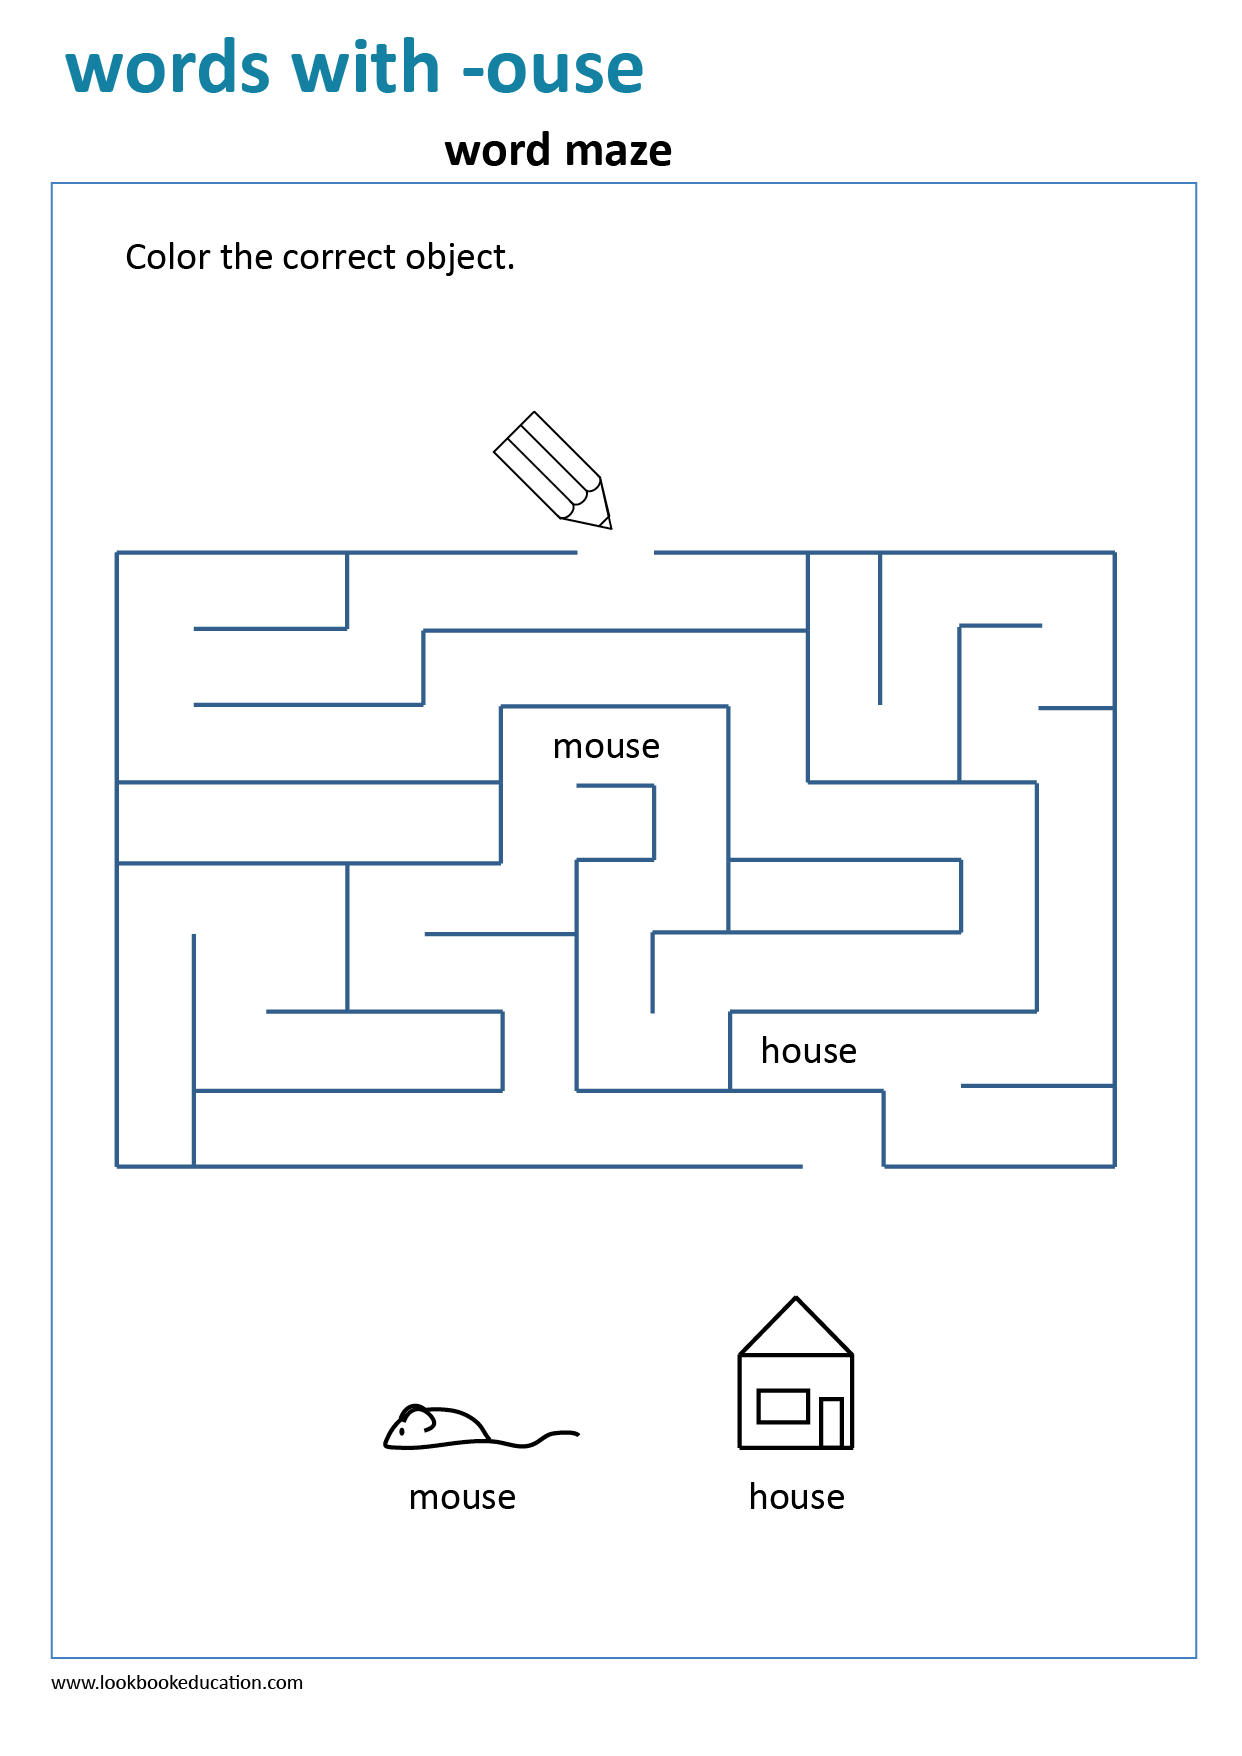 Worksheet Words With Ouse Maze In